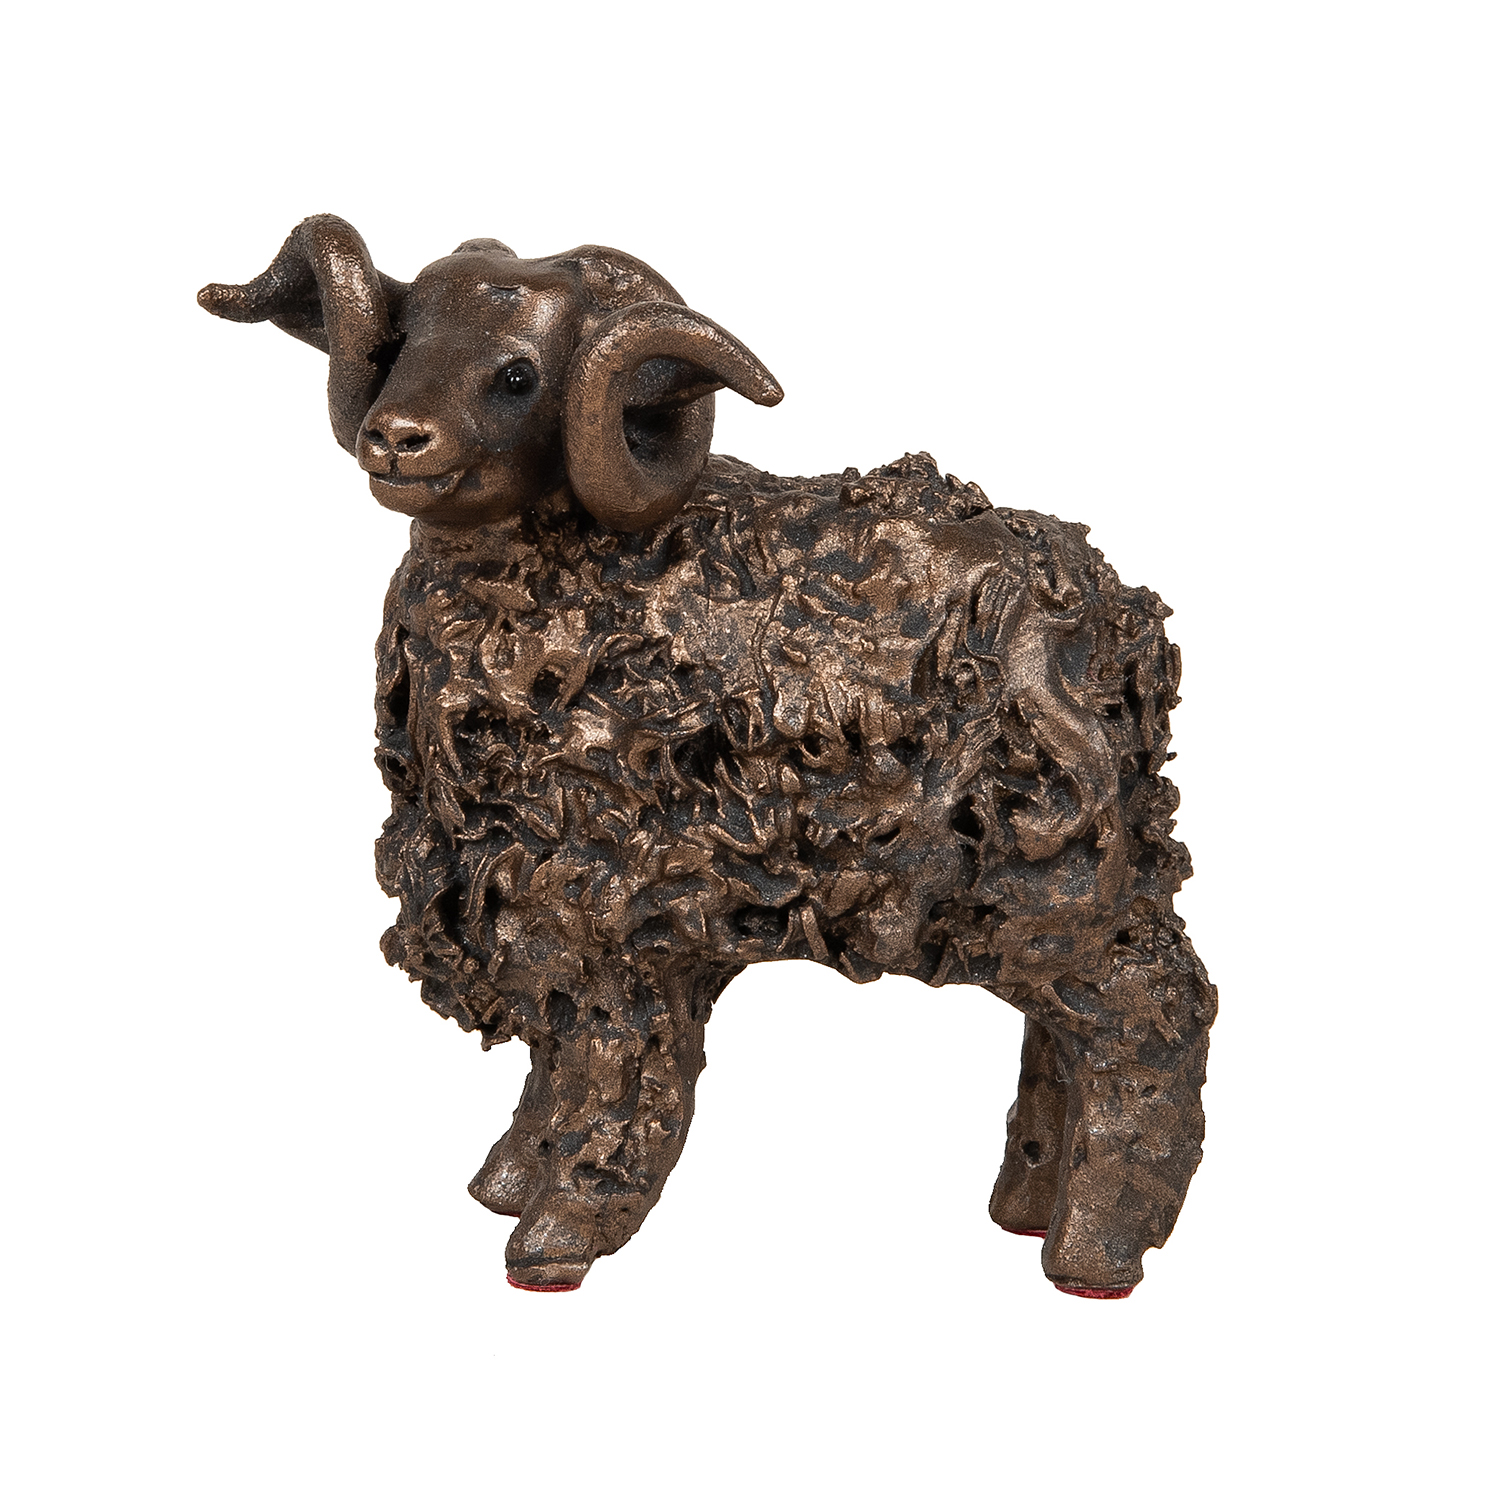 Frith Sculpture – Swaledale Ram Standing in Bronze Resin in Gift Box